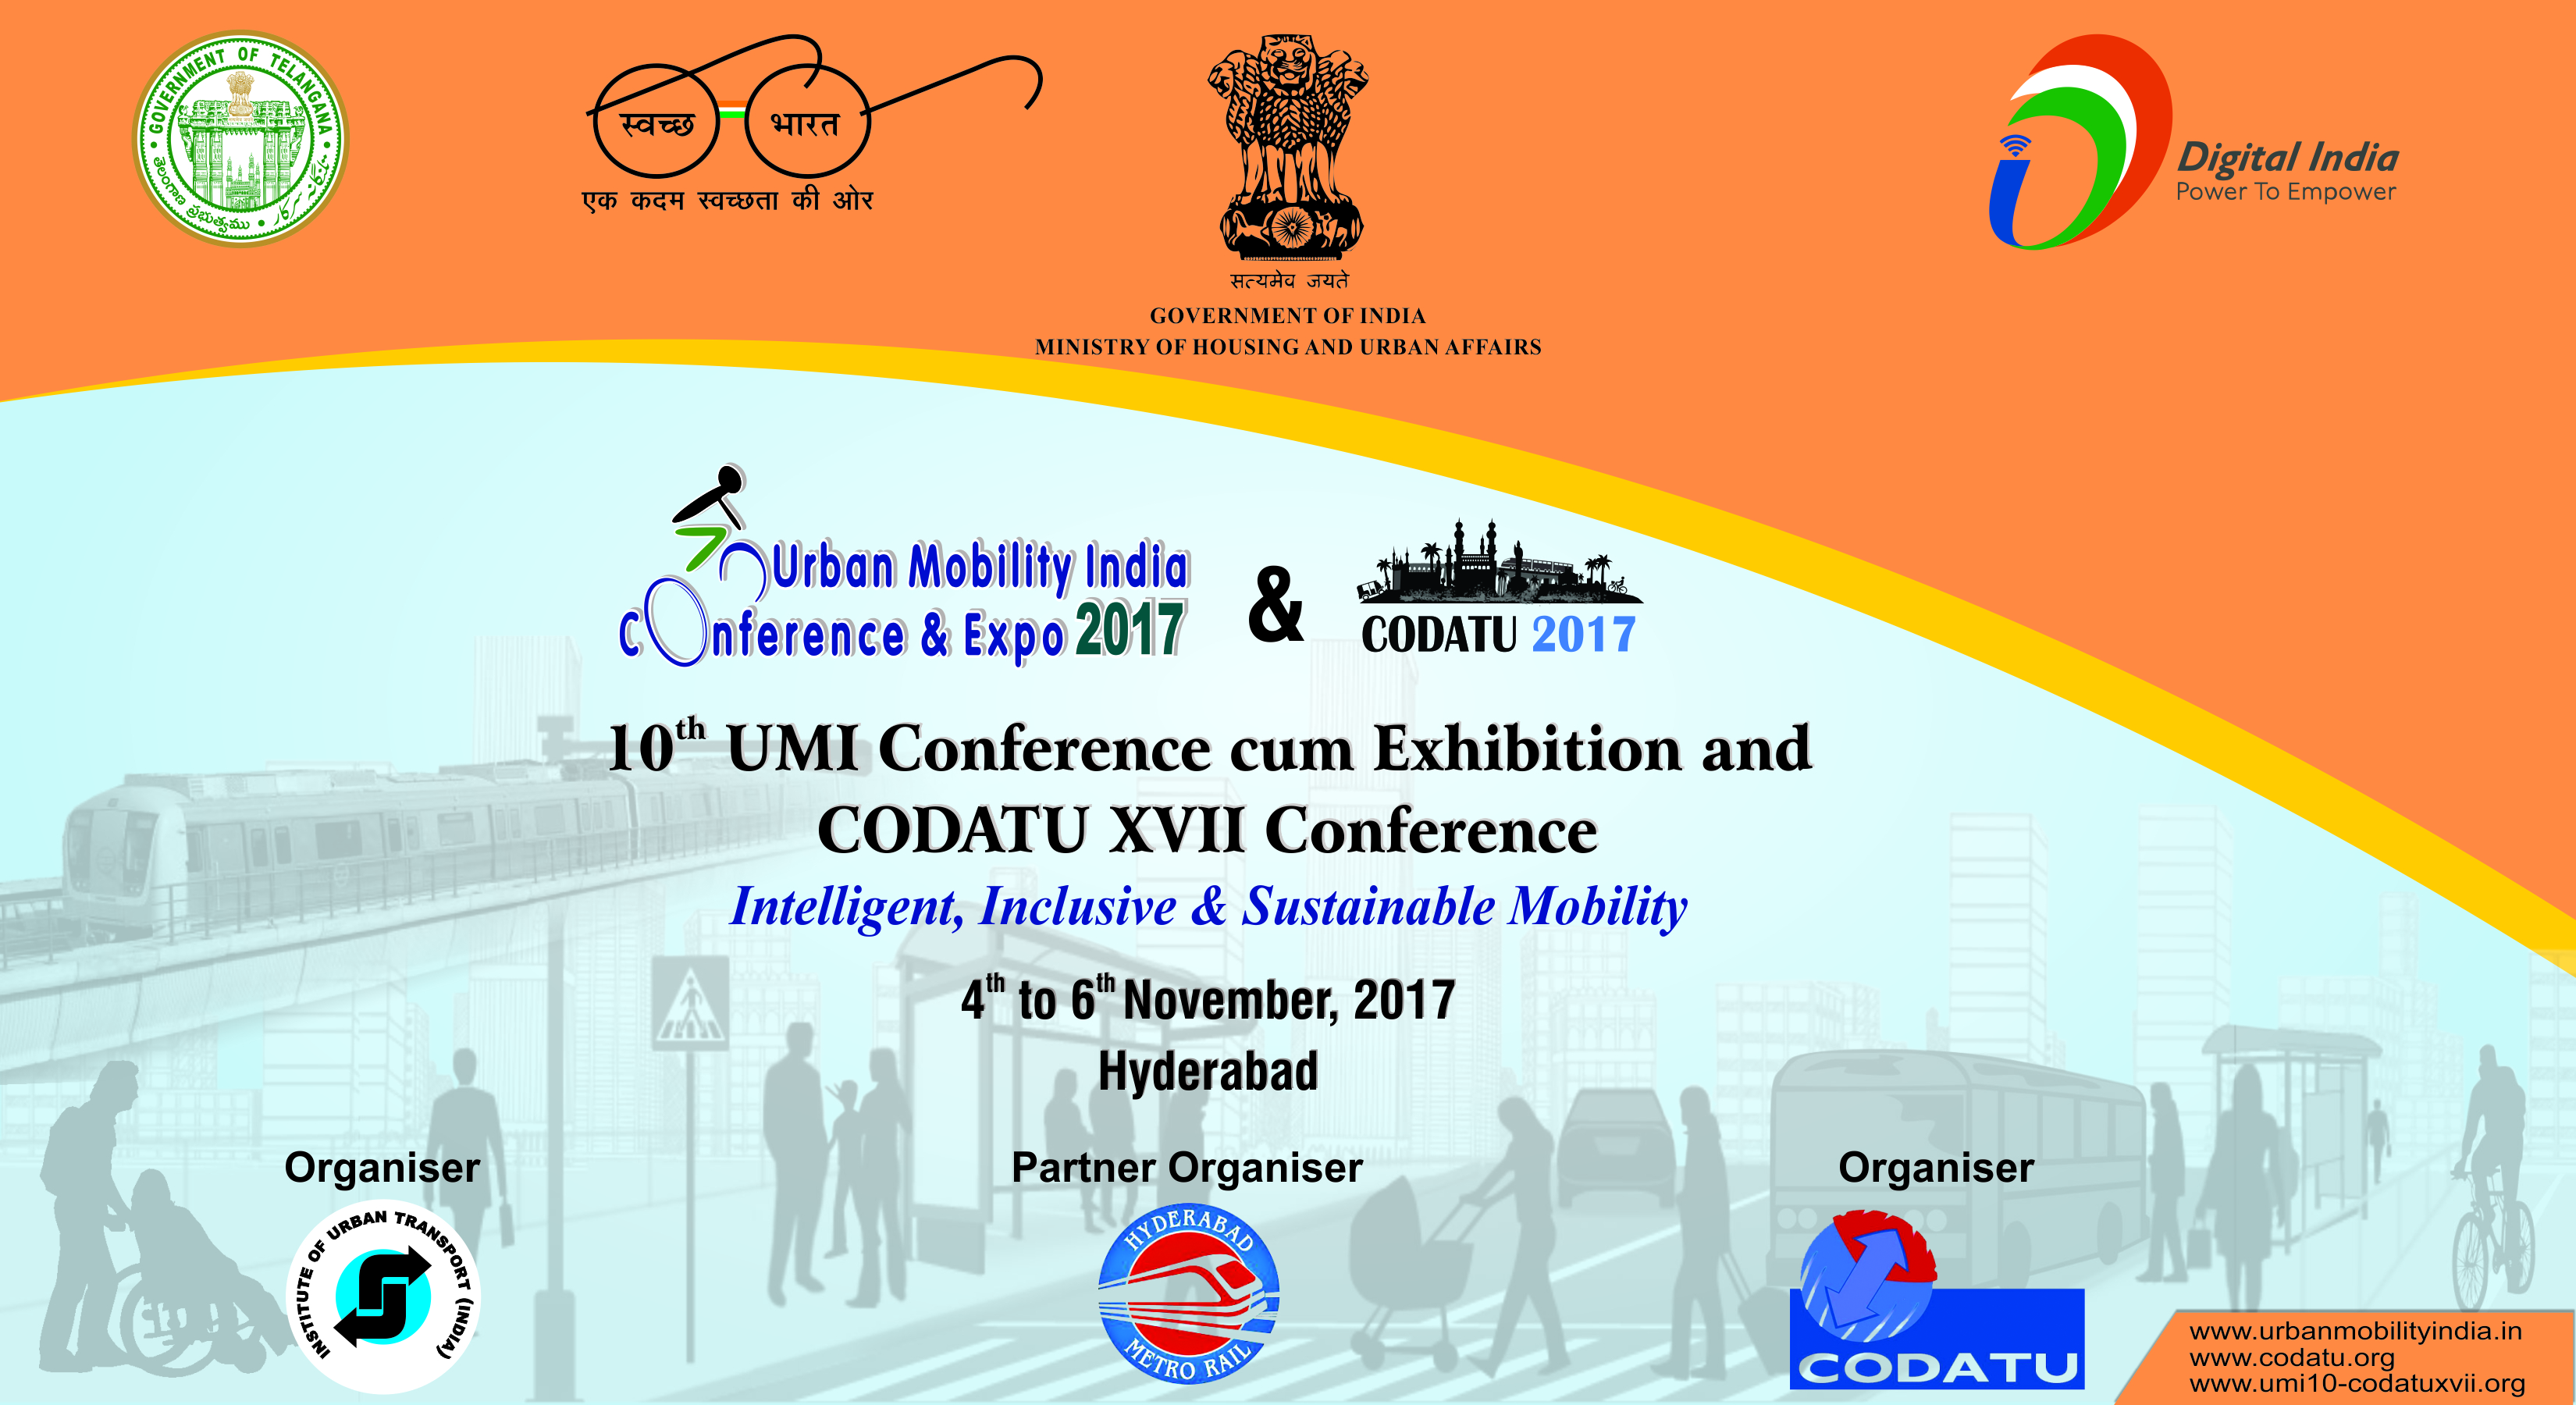 CODATU XVII – 2017 – Hyderabad (India): Smart, Inclusive and Sustainable Mobility